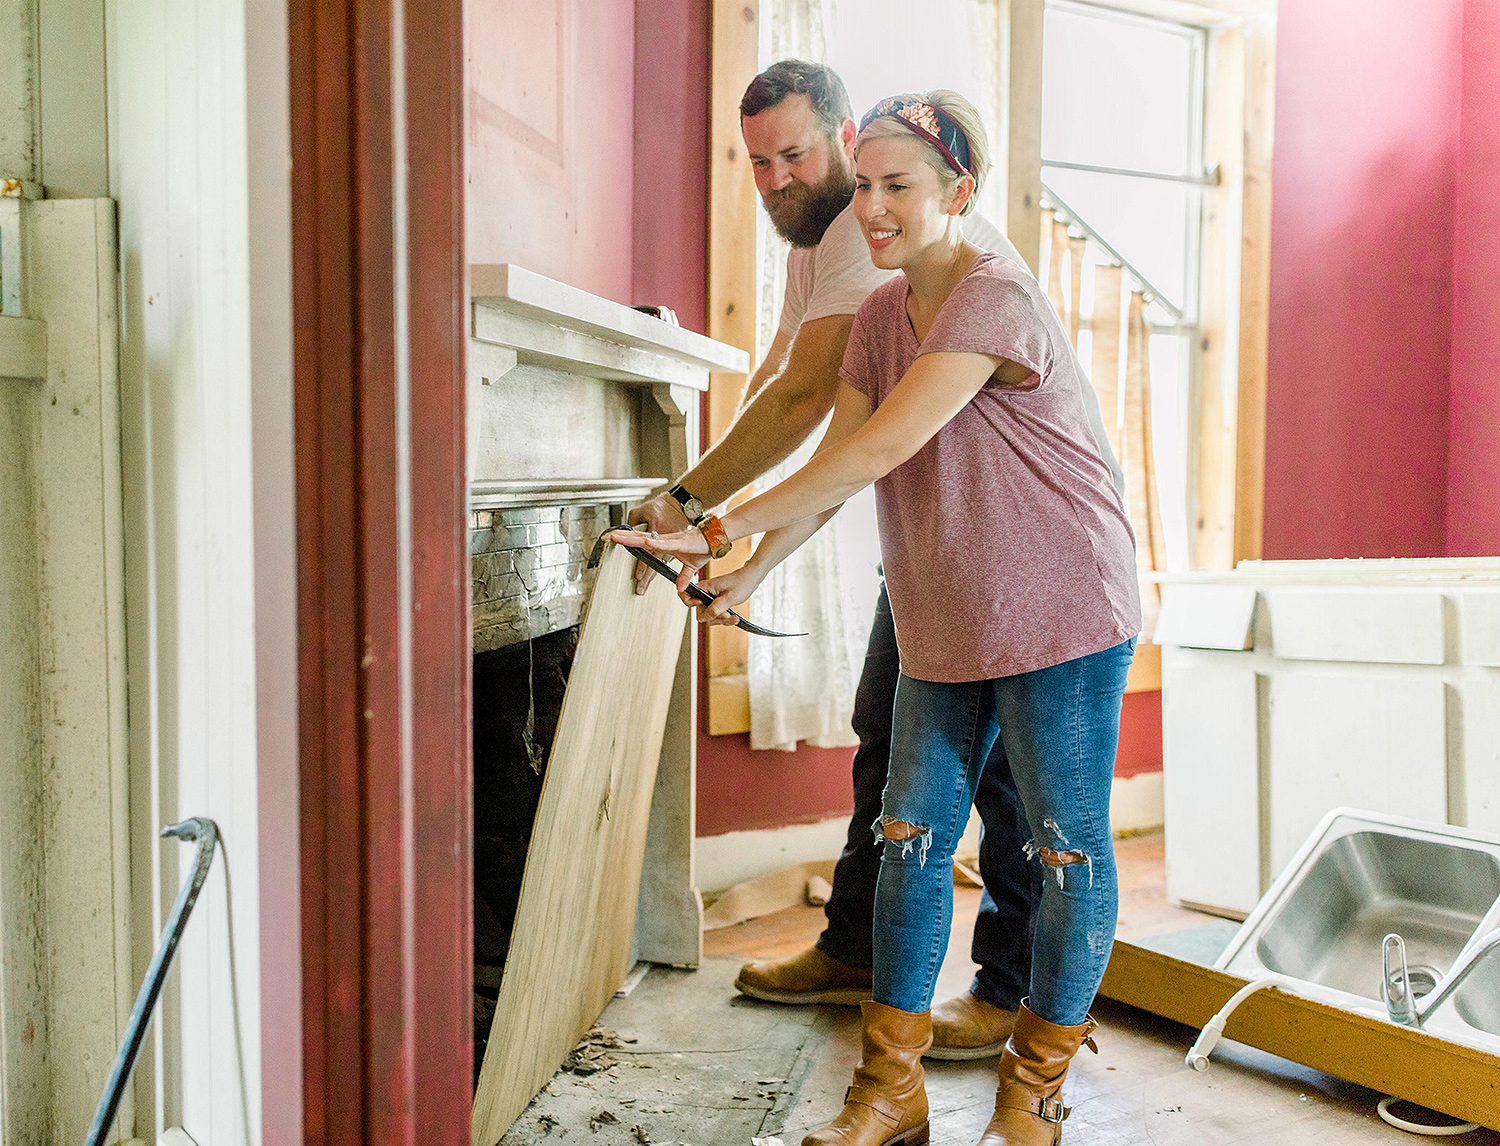 New HGTV Series Home Town Takeover